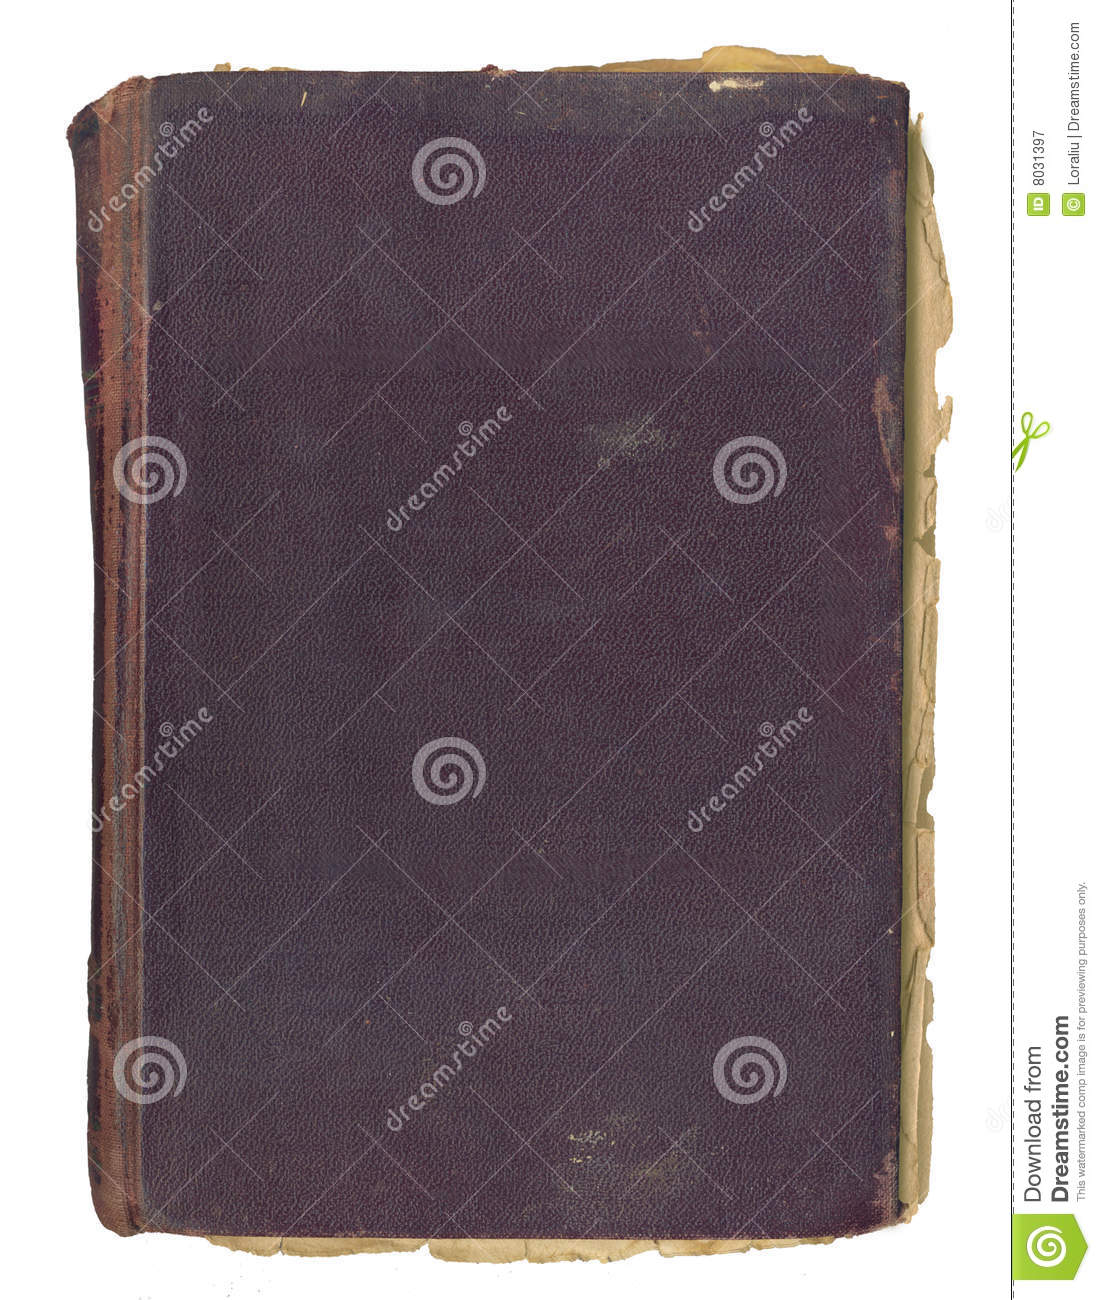 Grunge Book Cover Texture : Grunge cover for an album royalty free stock photo